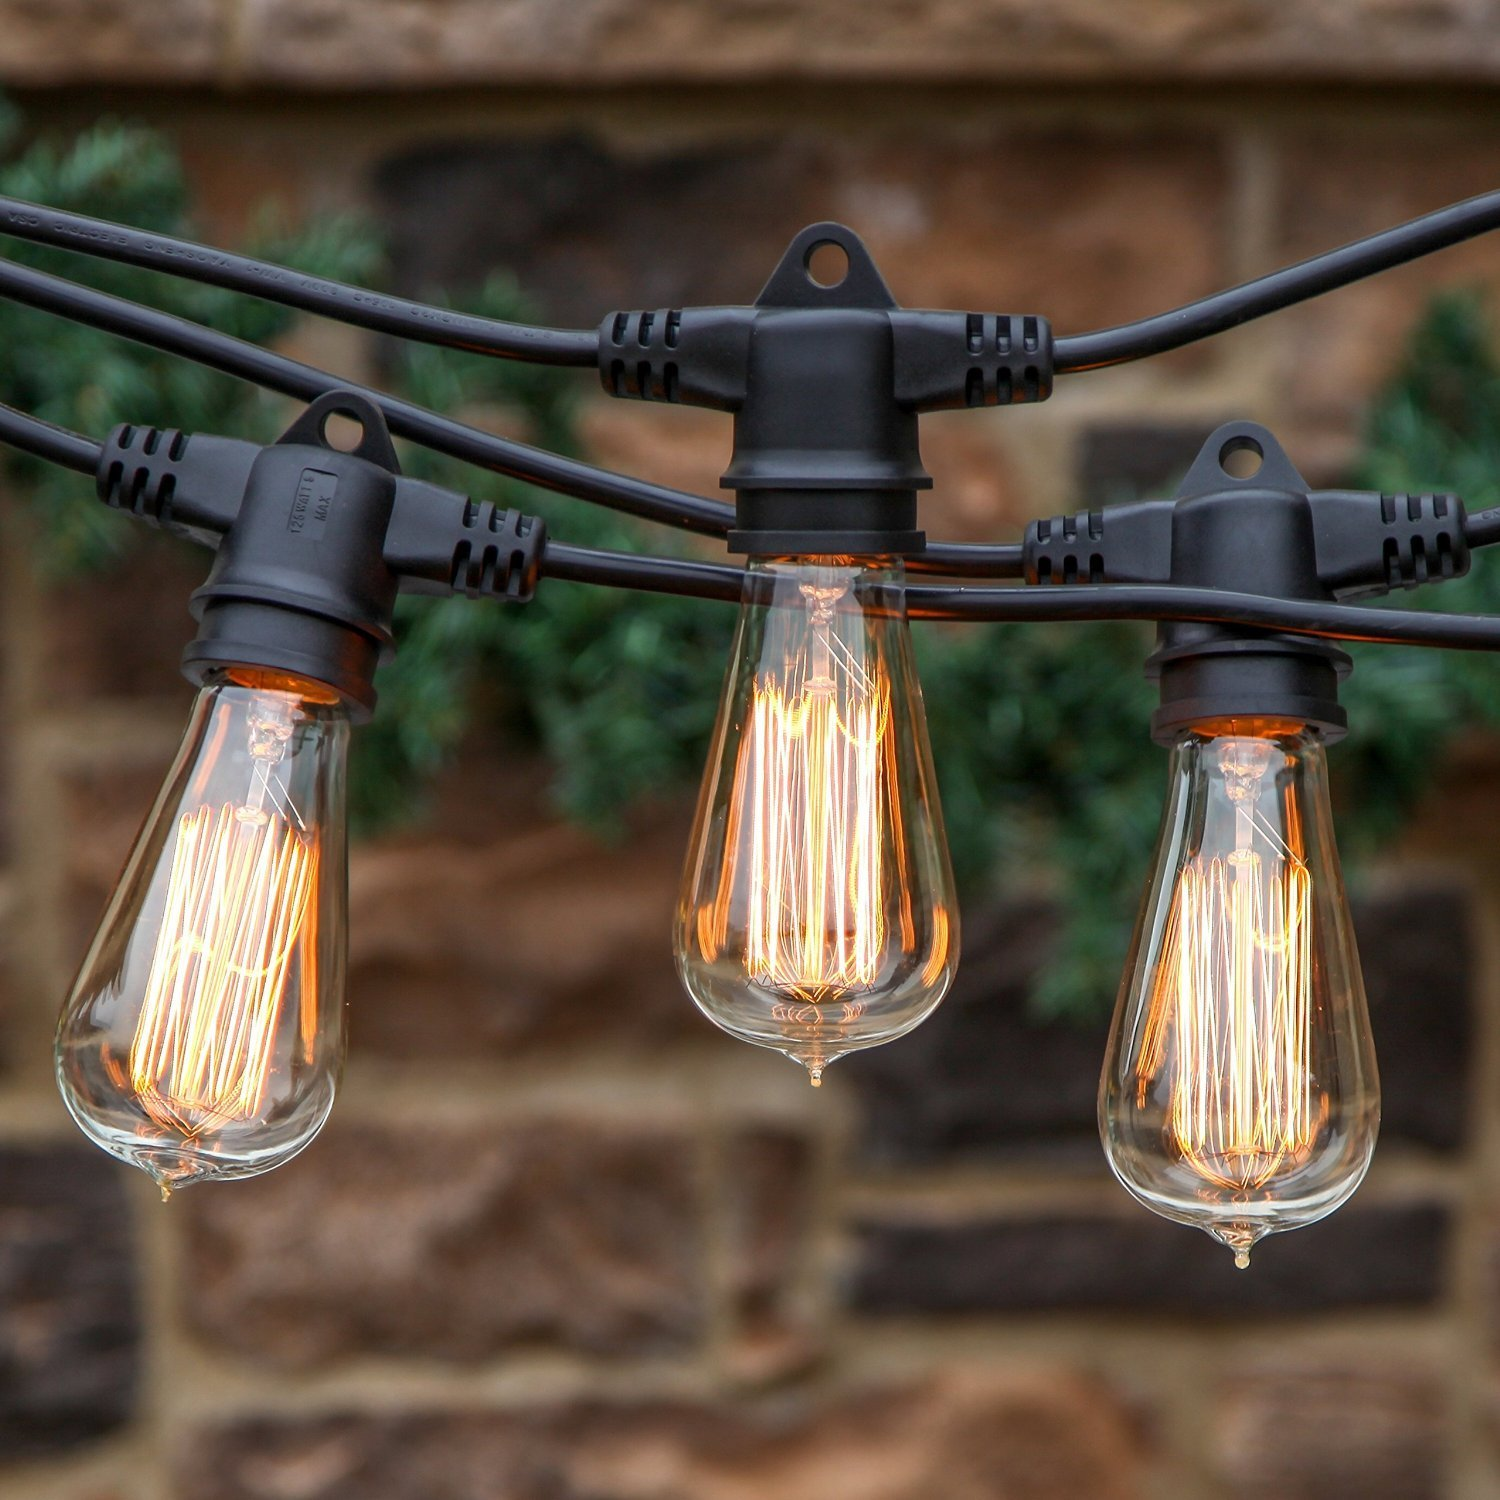 Brightech   Ambience Pro Vintage Edition With WeatherTite Technology    Outdoor Weatherproof Commercial Grade Lights With Included Antique Edison  Bulbs ...